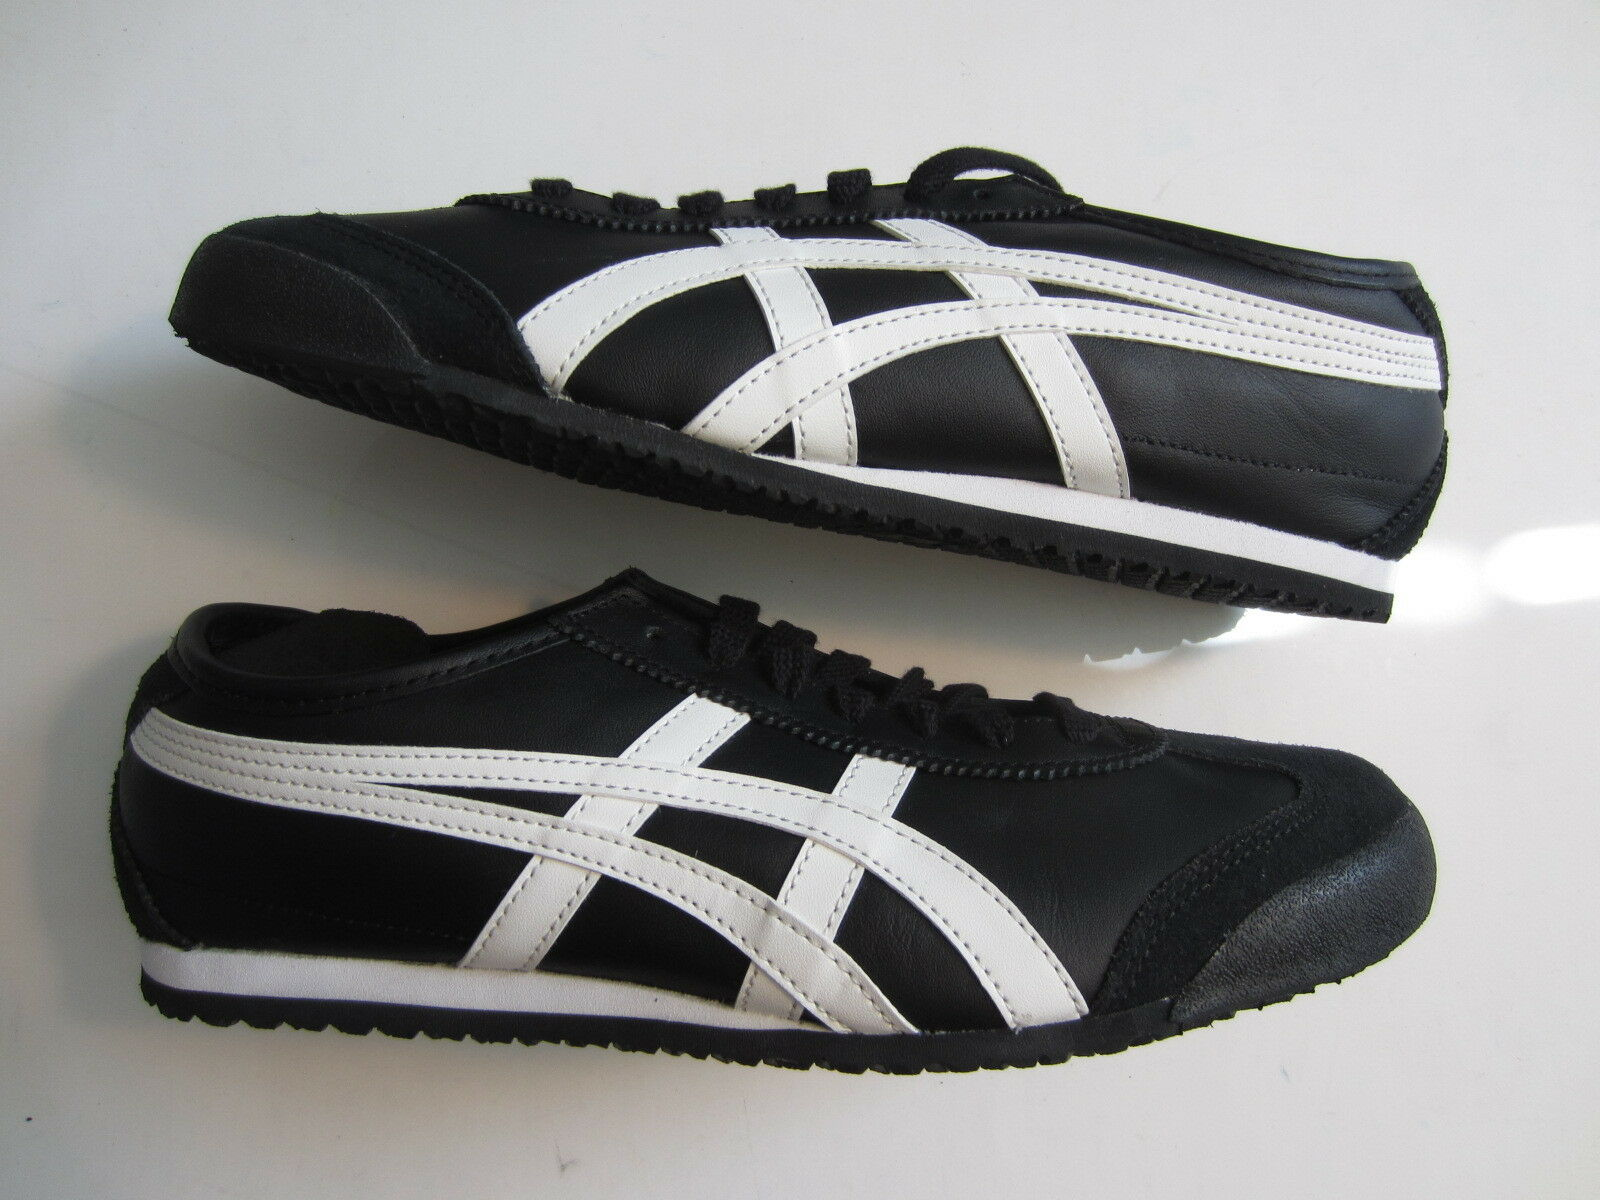 NEW Ascis Onitsuka Tiger Mexico 66 mens shoe DL408 9001 black white ultimate 81 Cheap women's shoes women's shoes